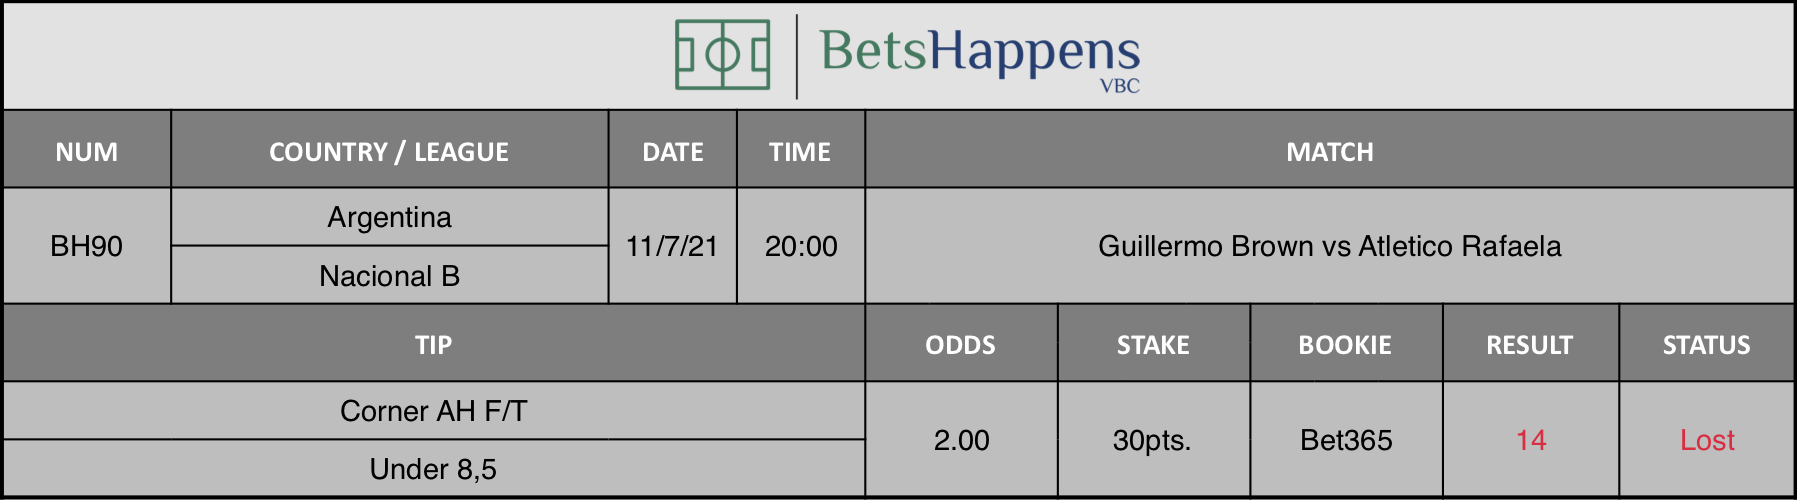 Results of our advice for the Guillermo Brown vs Atletico Rafaela match in which Corner AH F/T Under 8,5 is recommended.